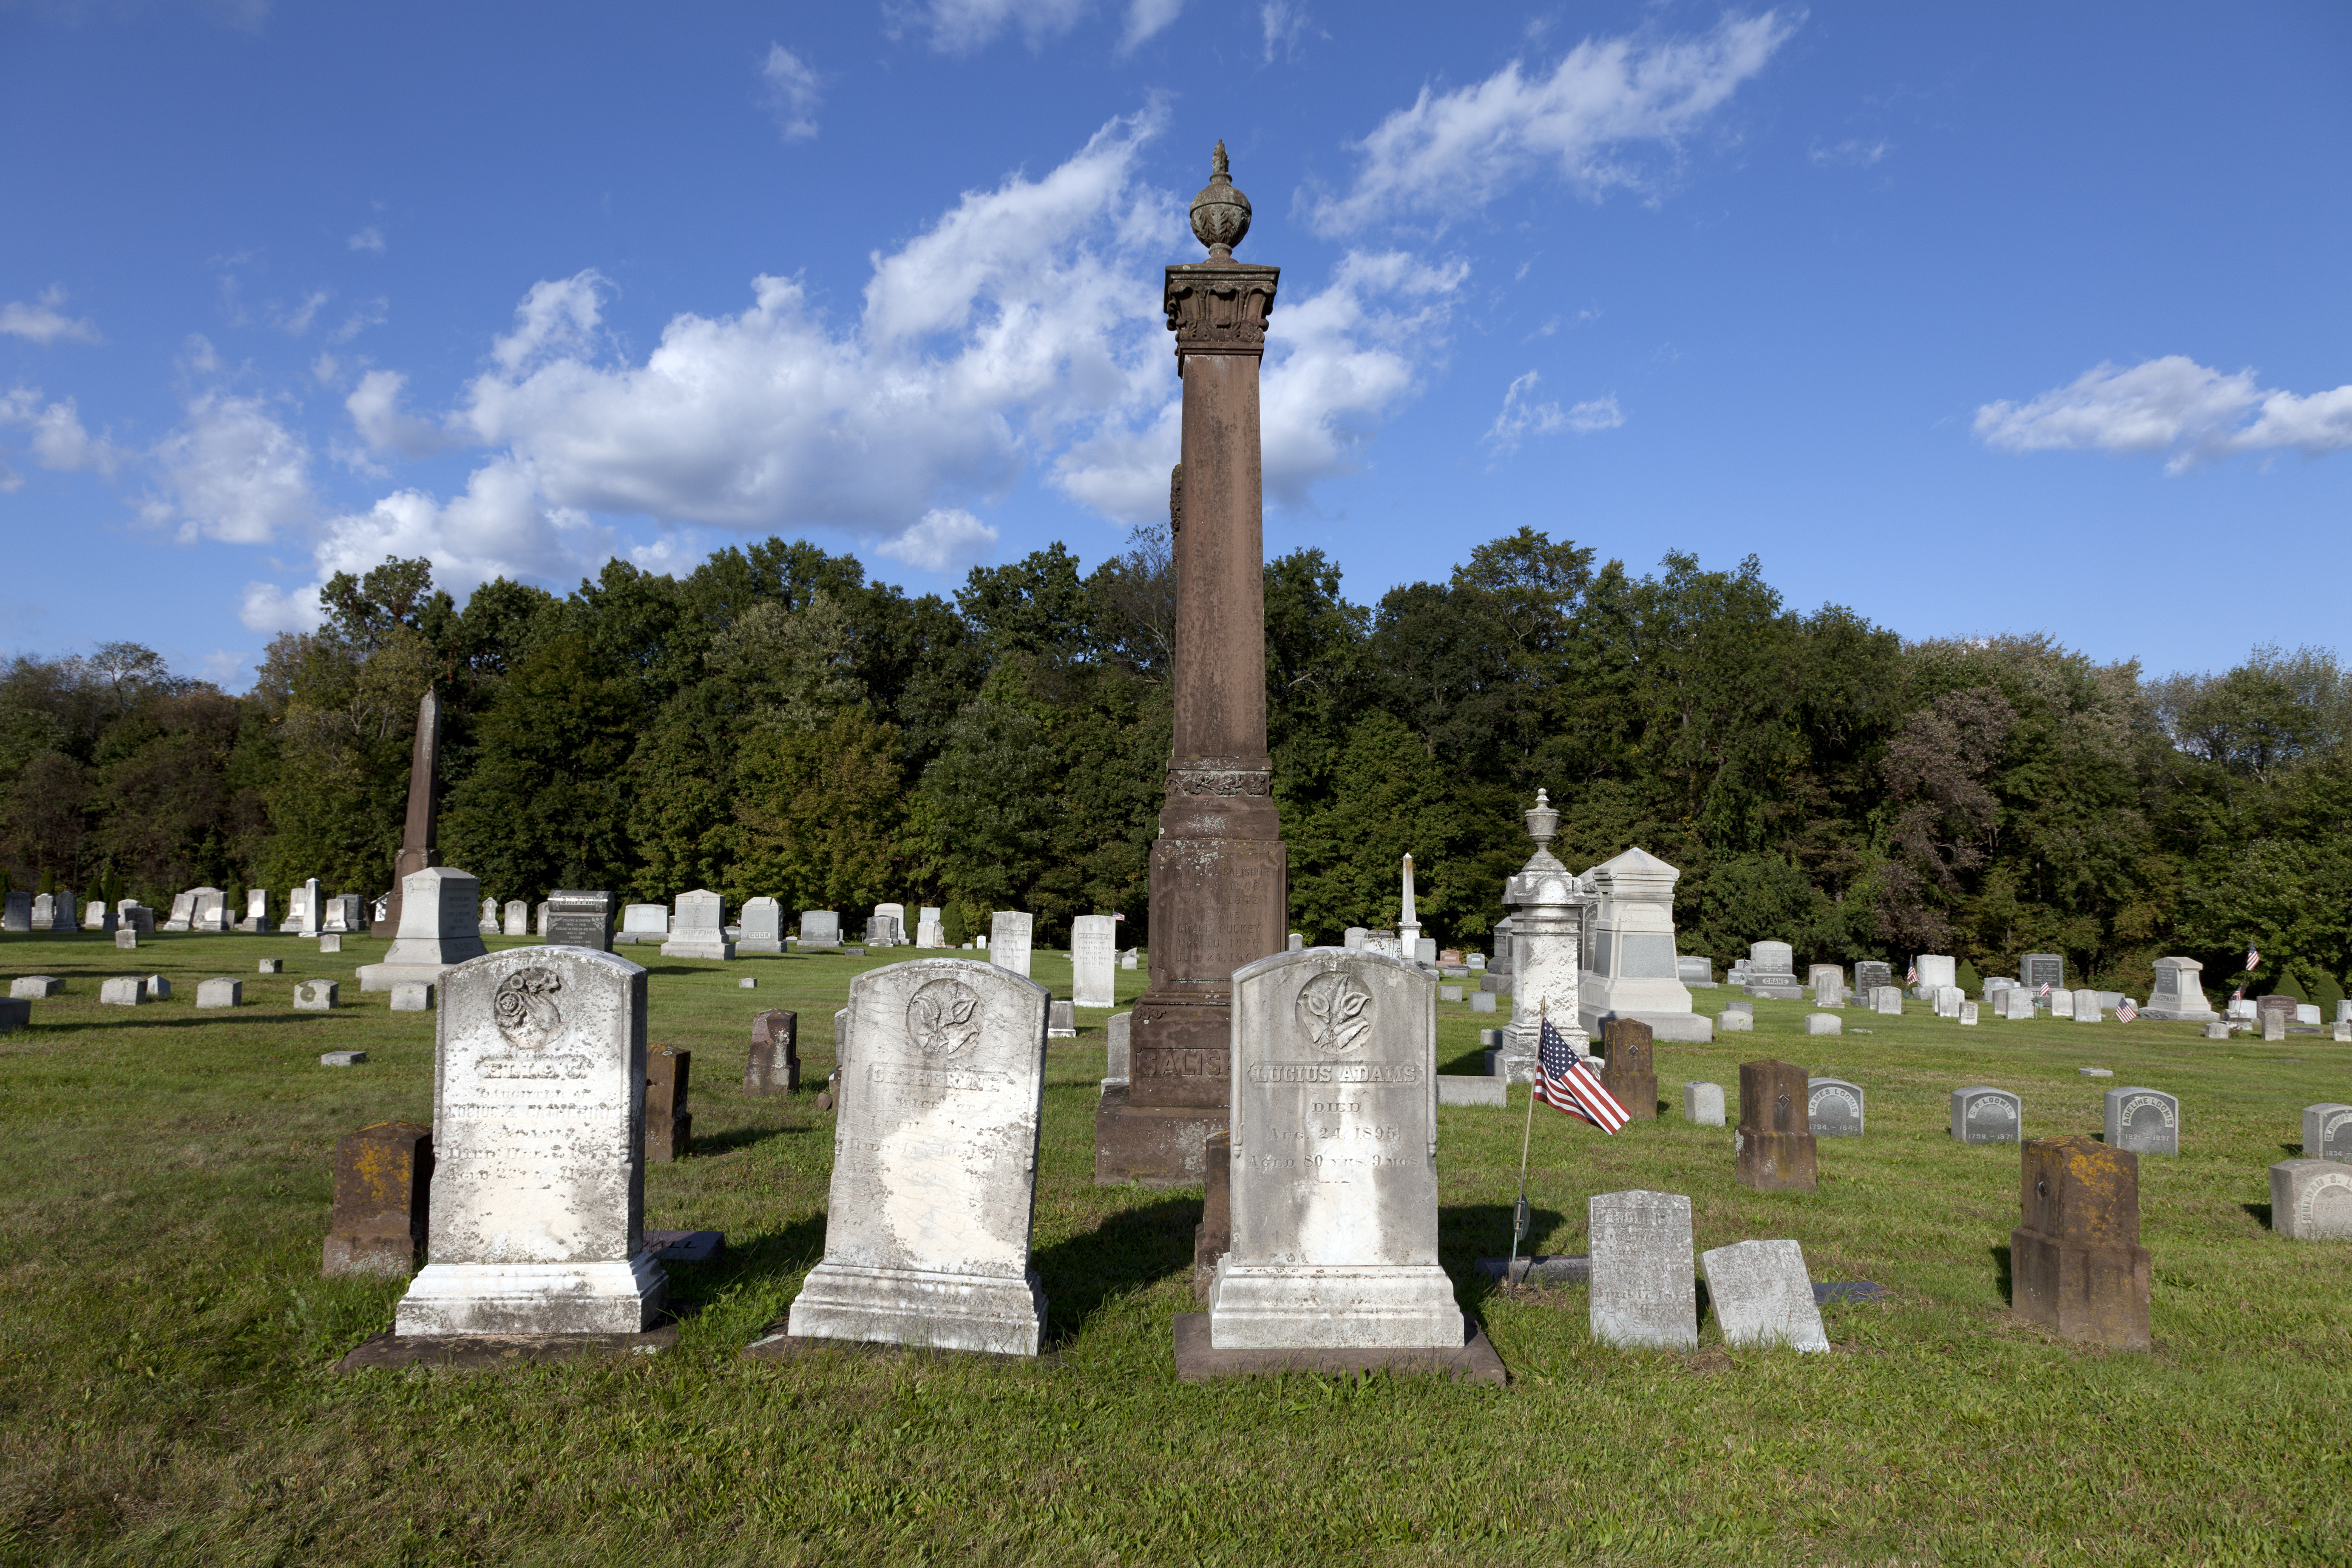 The West Suffield cemetery in Connecticut.